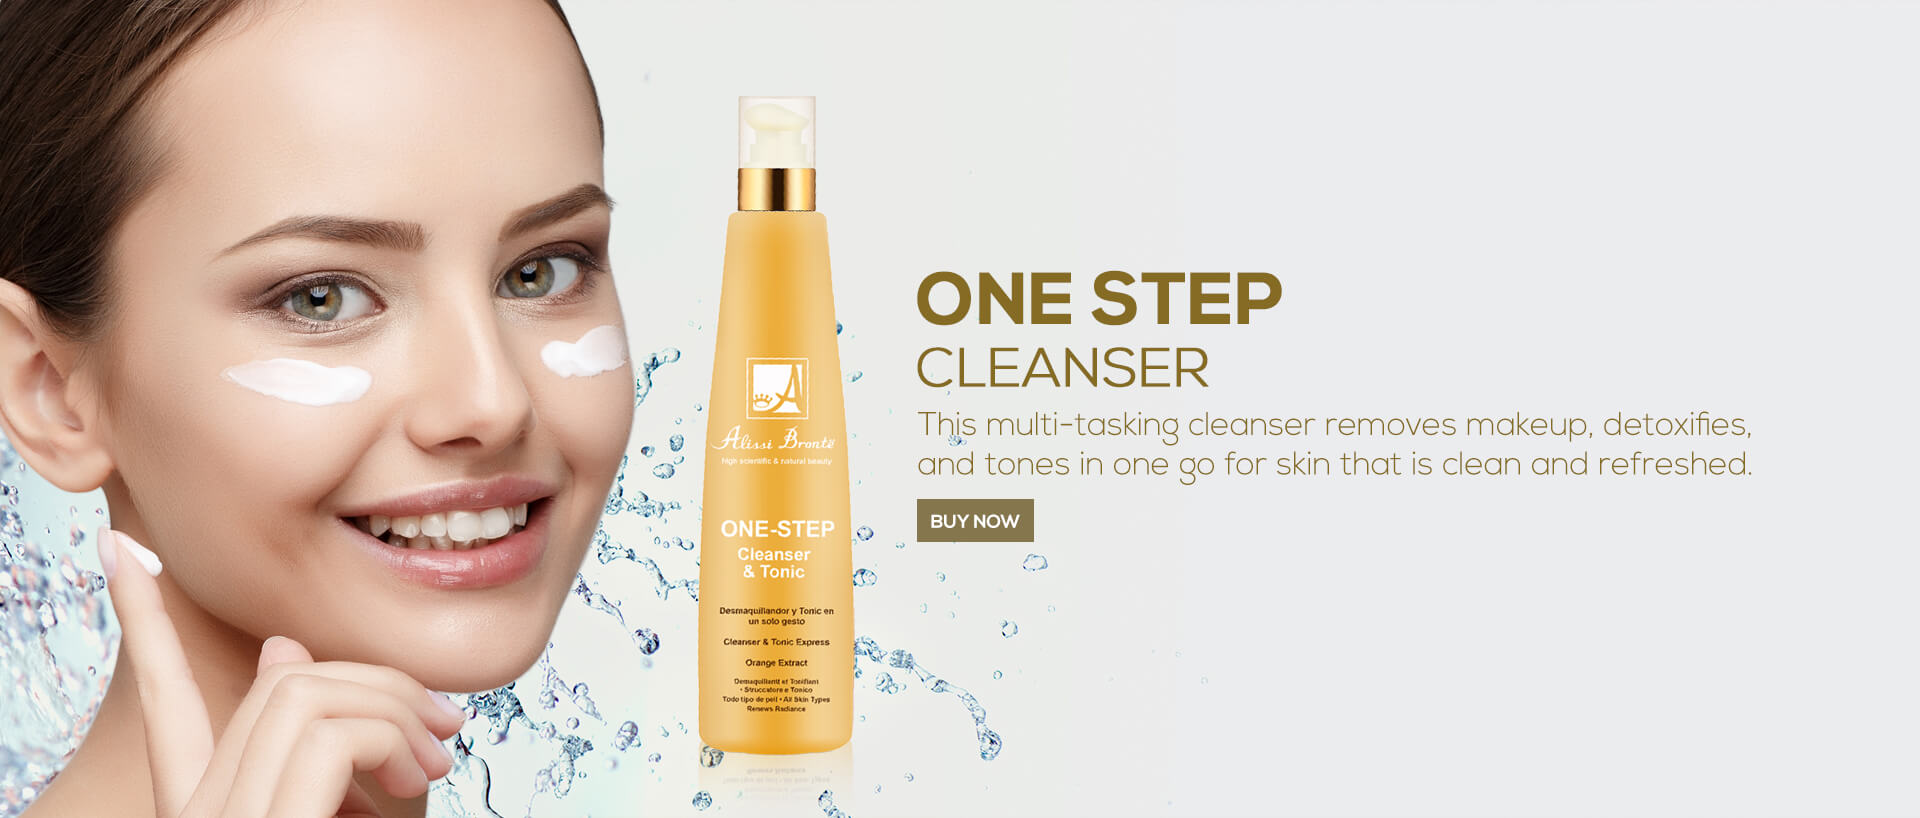 One Step Cleanser